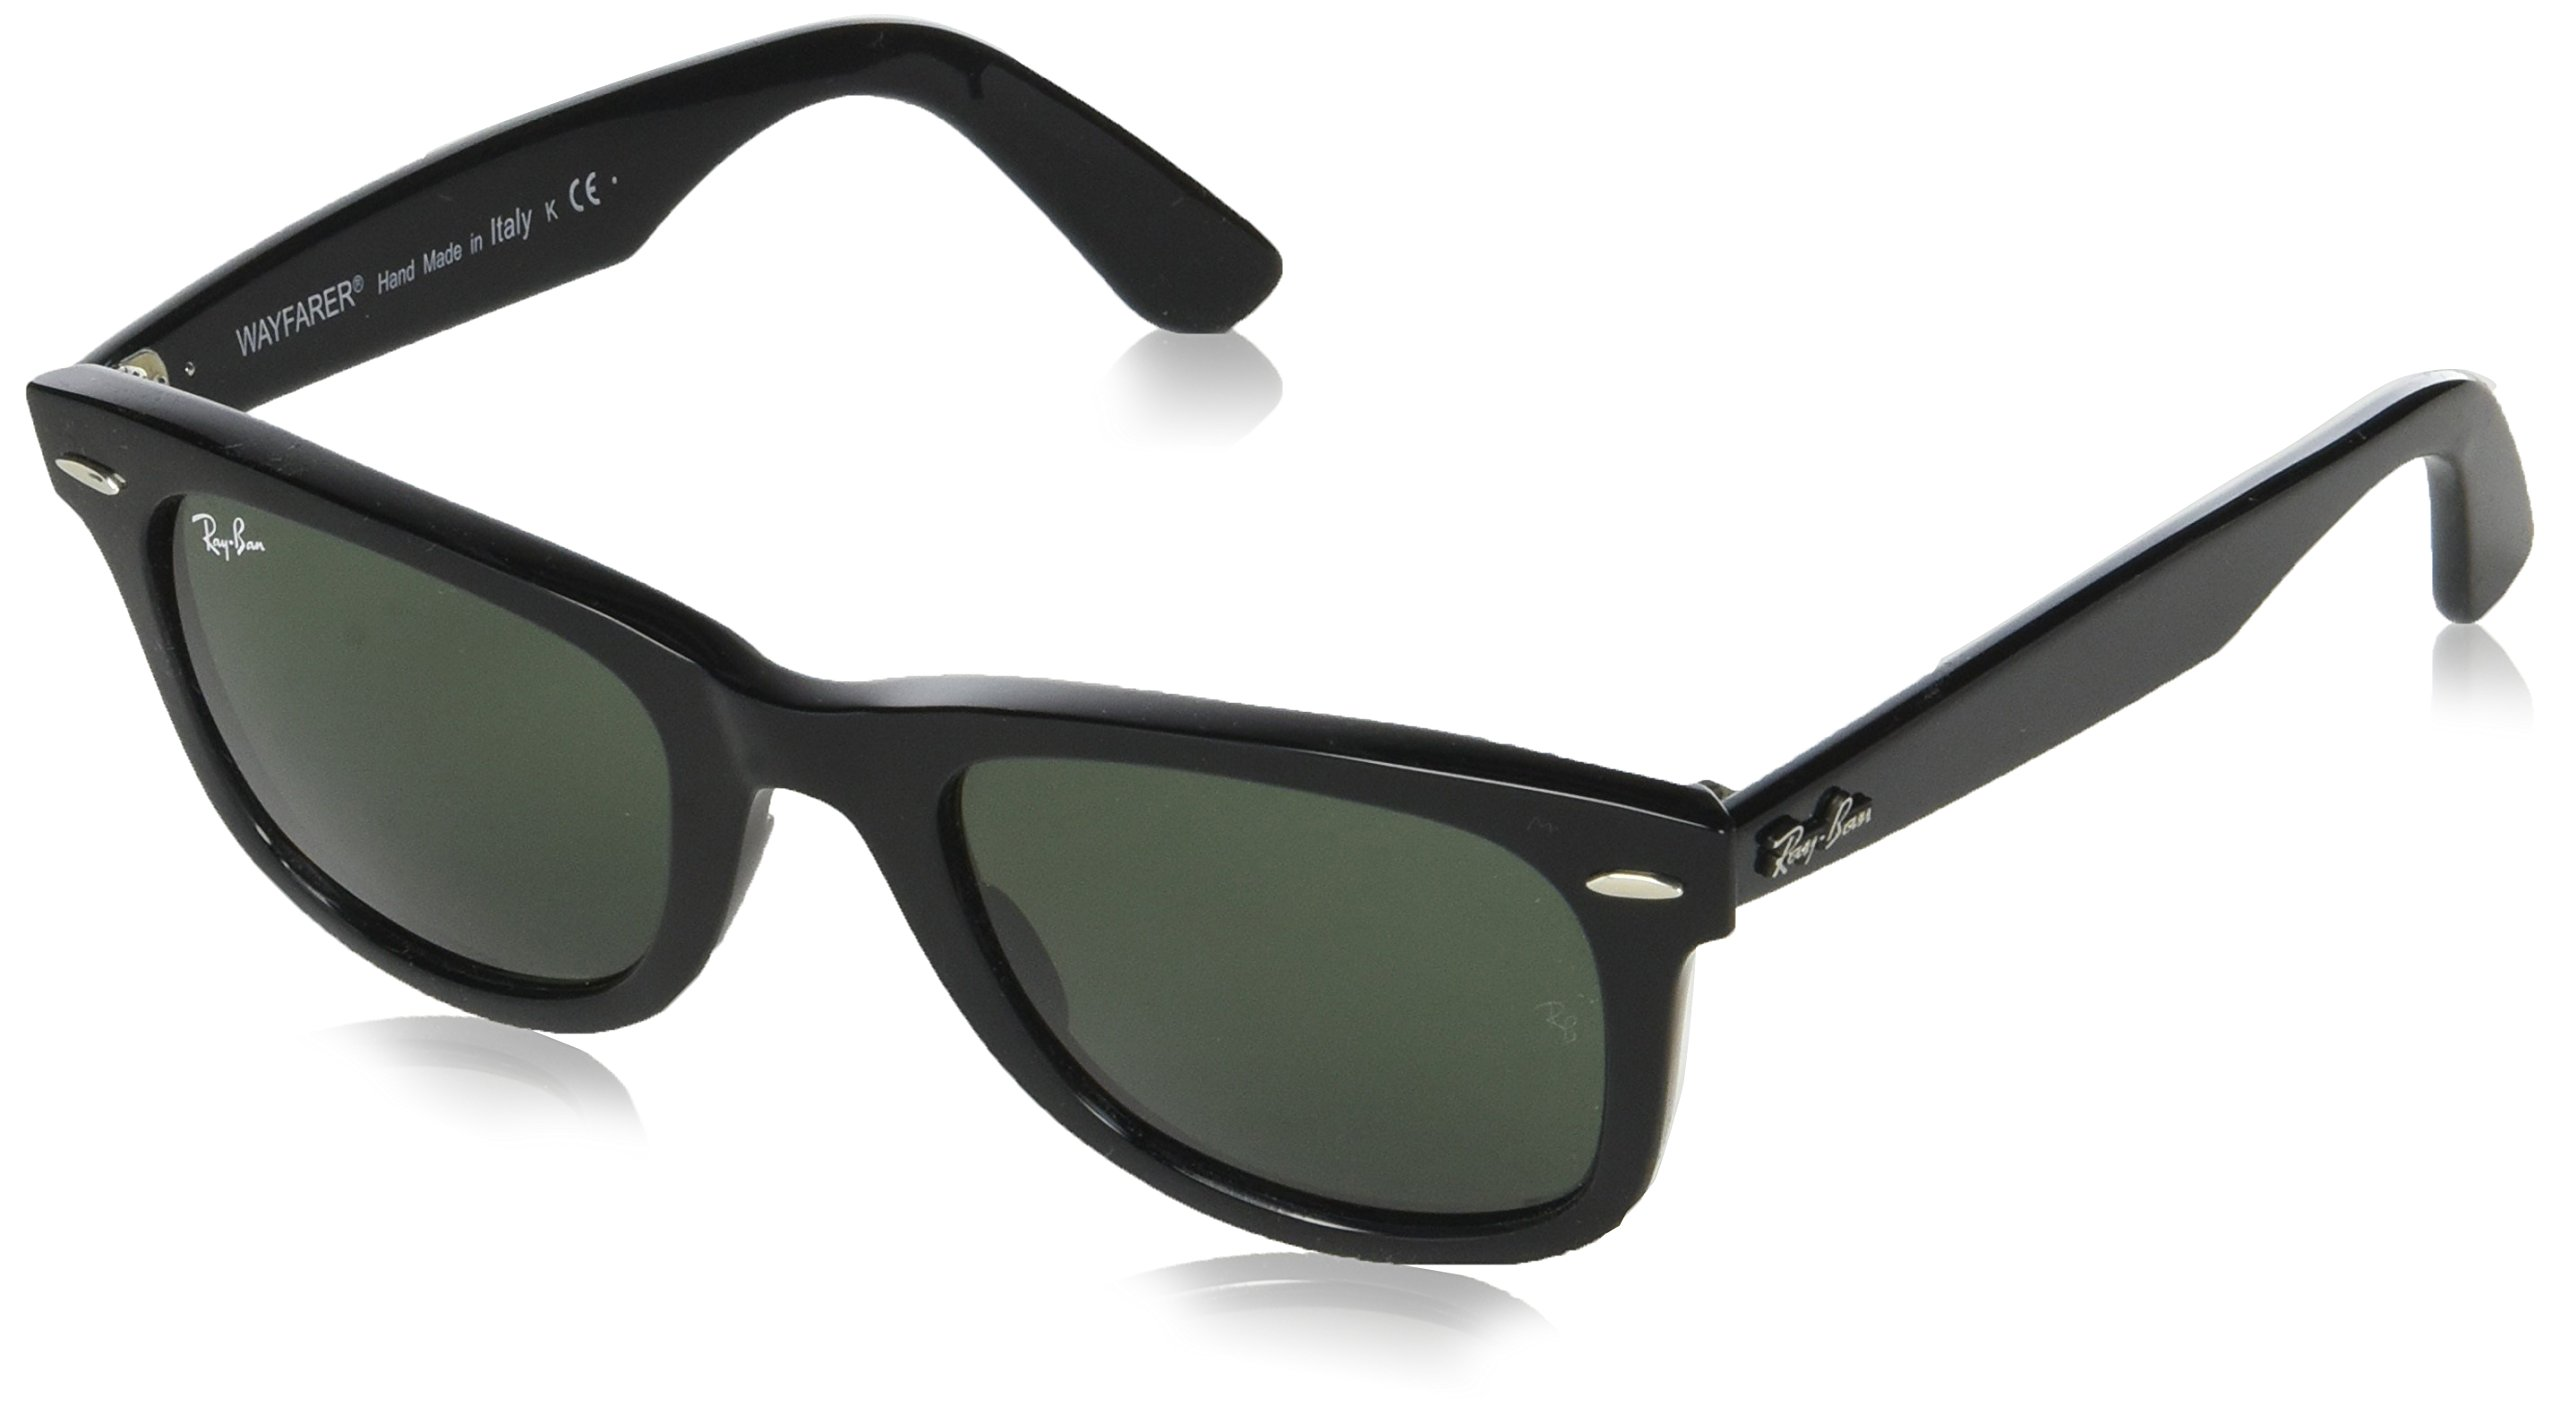 044e9691c Amazon.com: Ray-Ban